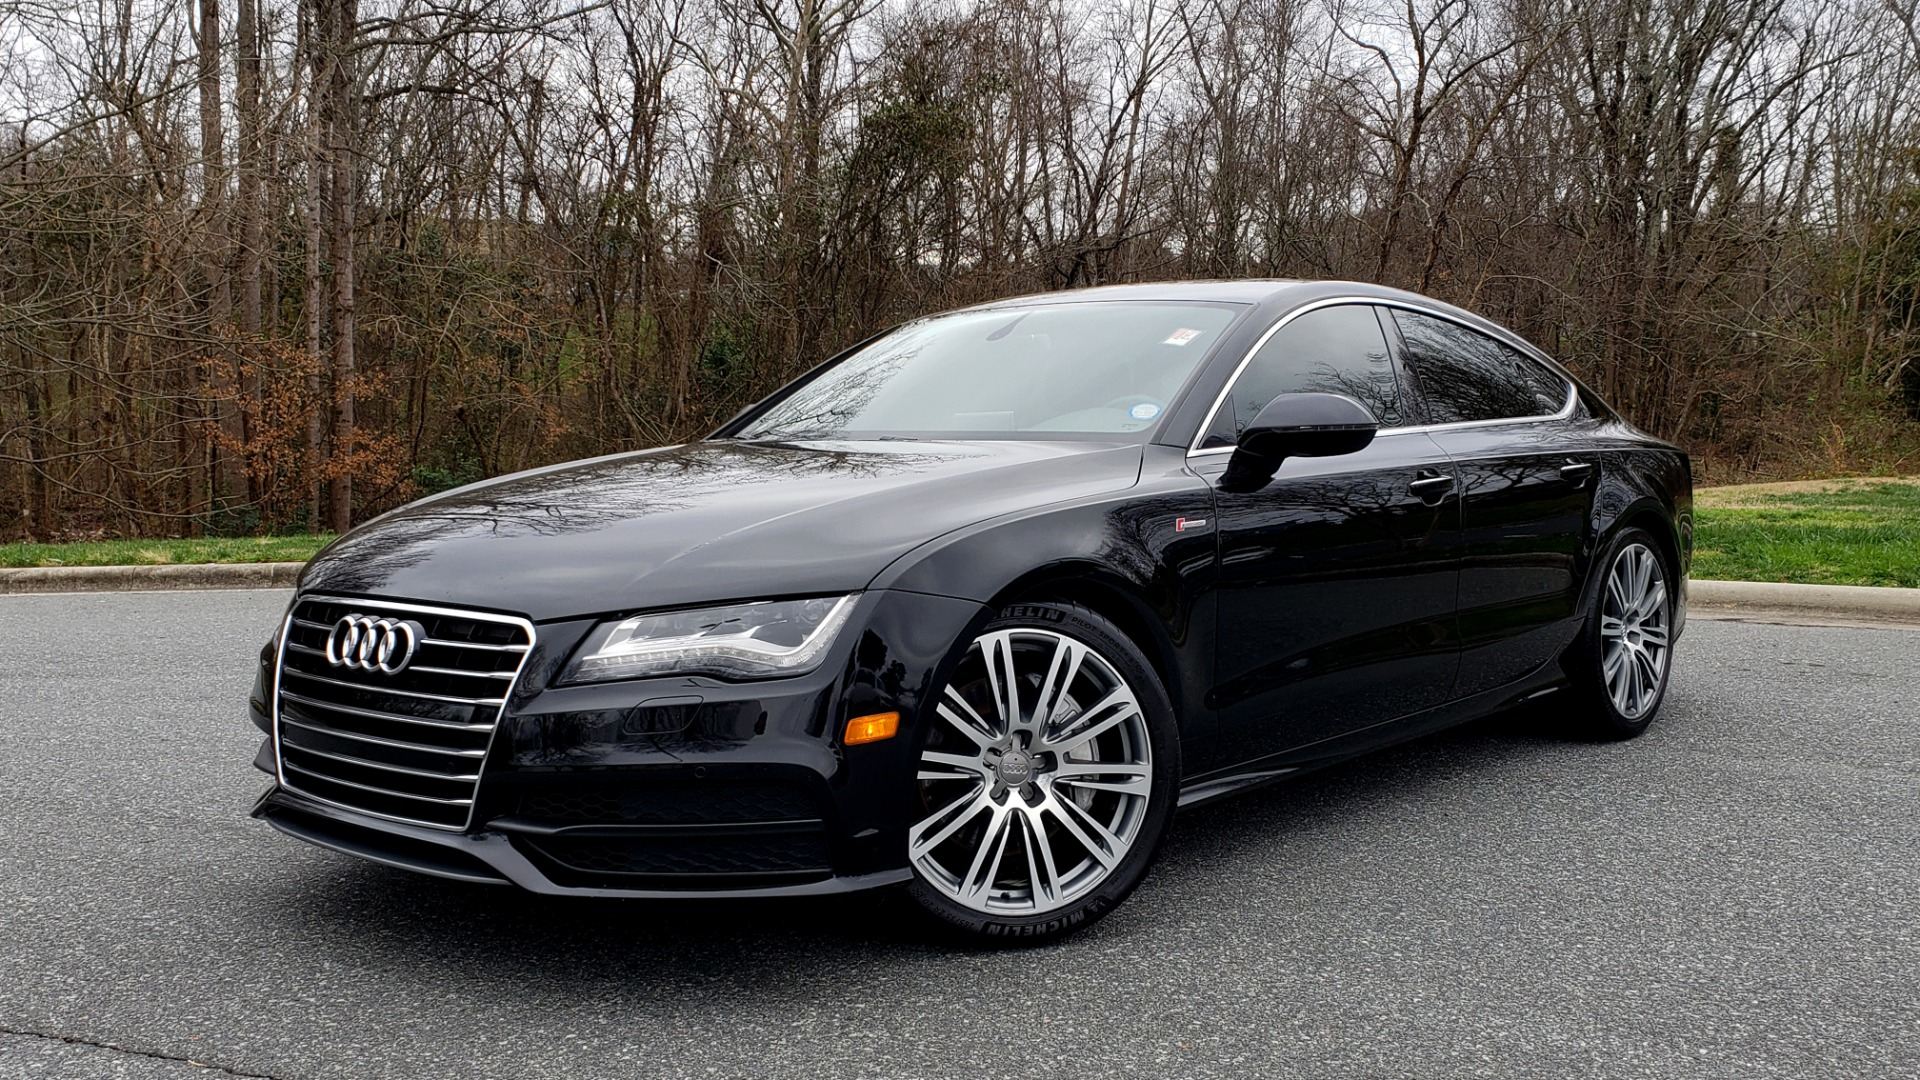 Used 2014 Audi A7 3.0 PRESTIGE / NAV / SUNROOF / BOSE / REARVIEW for sale Sold at Formula Imports in Charlotte NC 28227 1